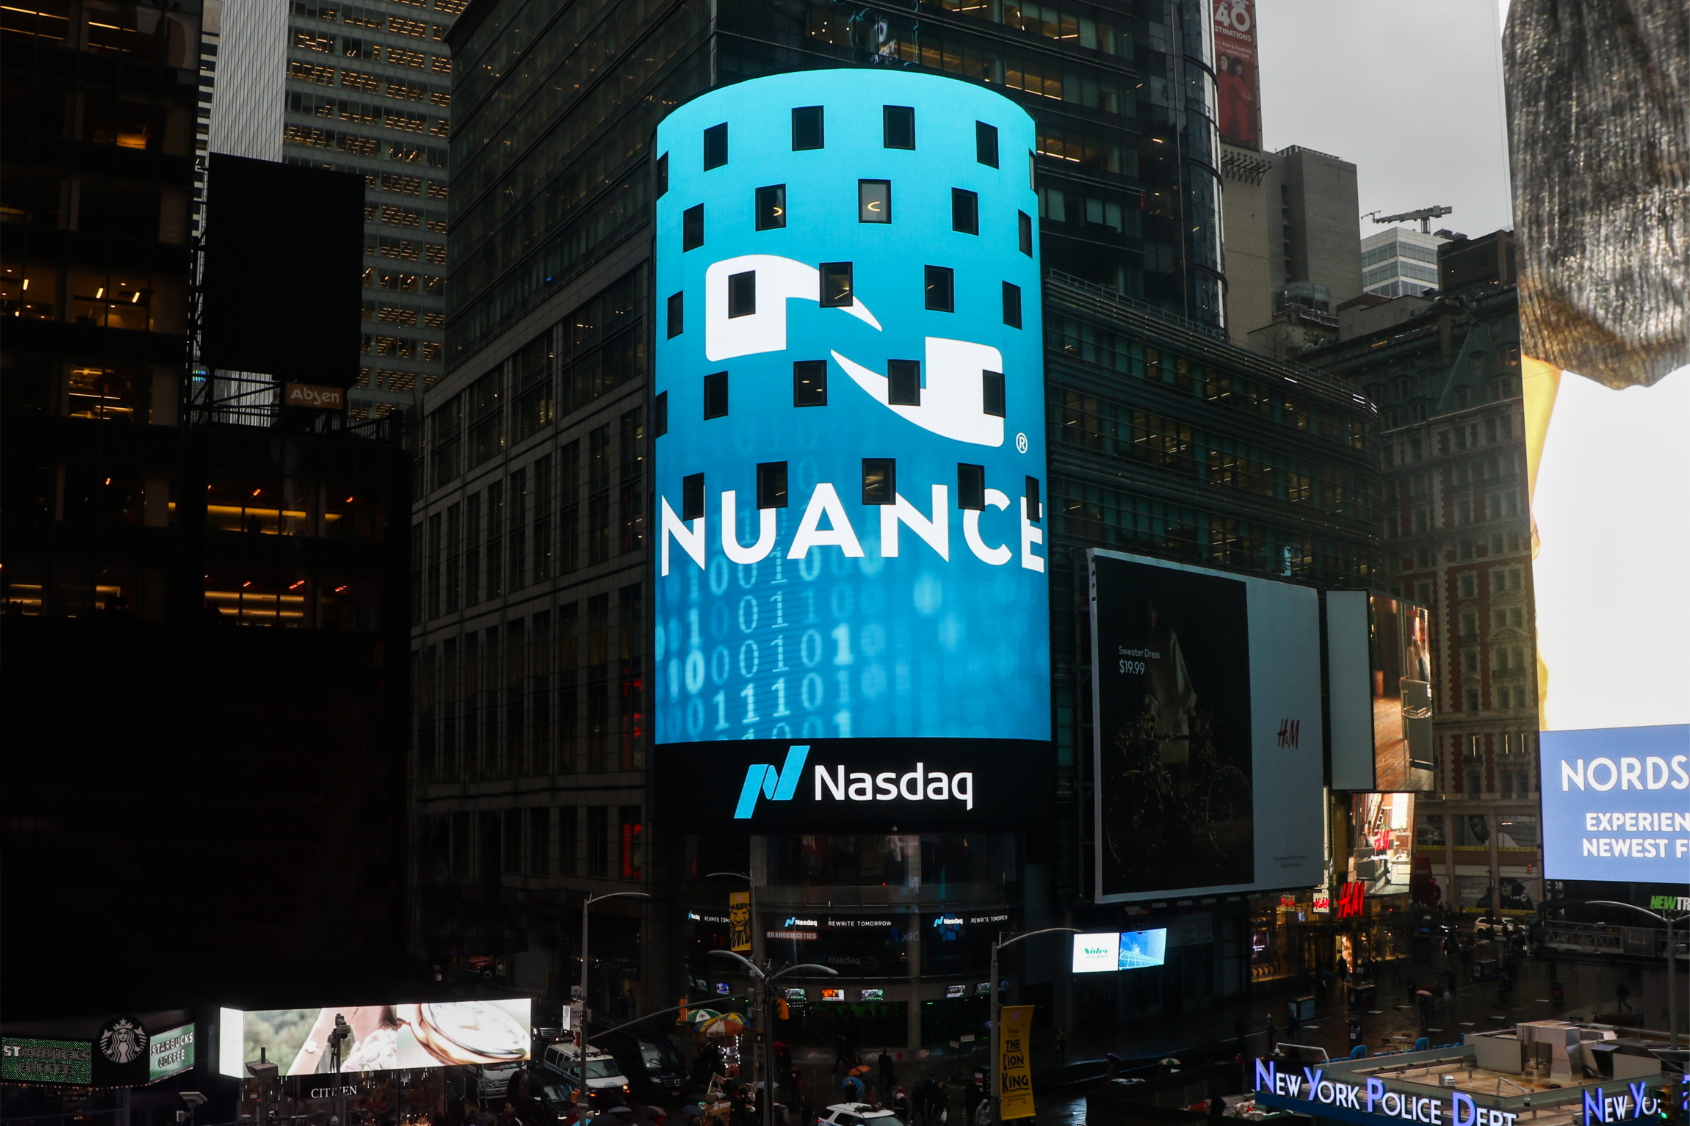 Nuance logo on time square nasdaq billboard